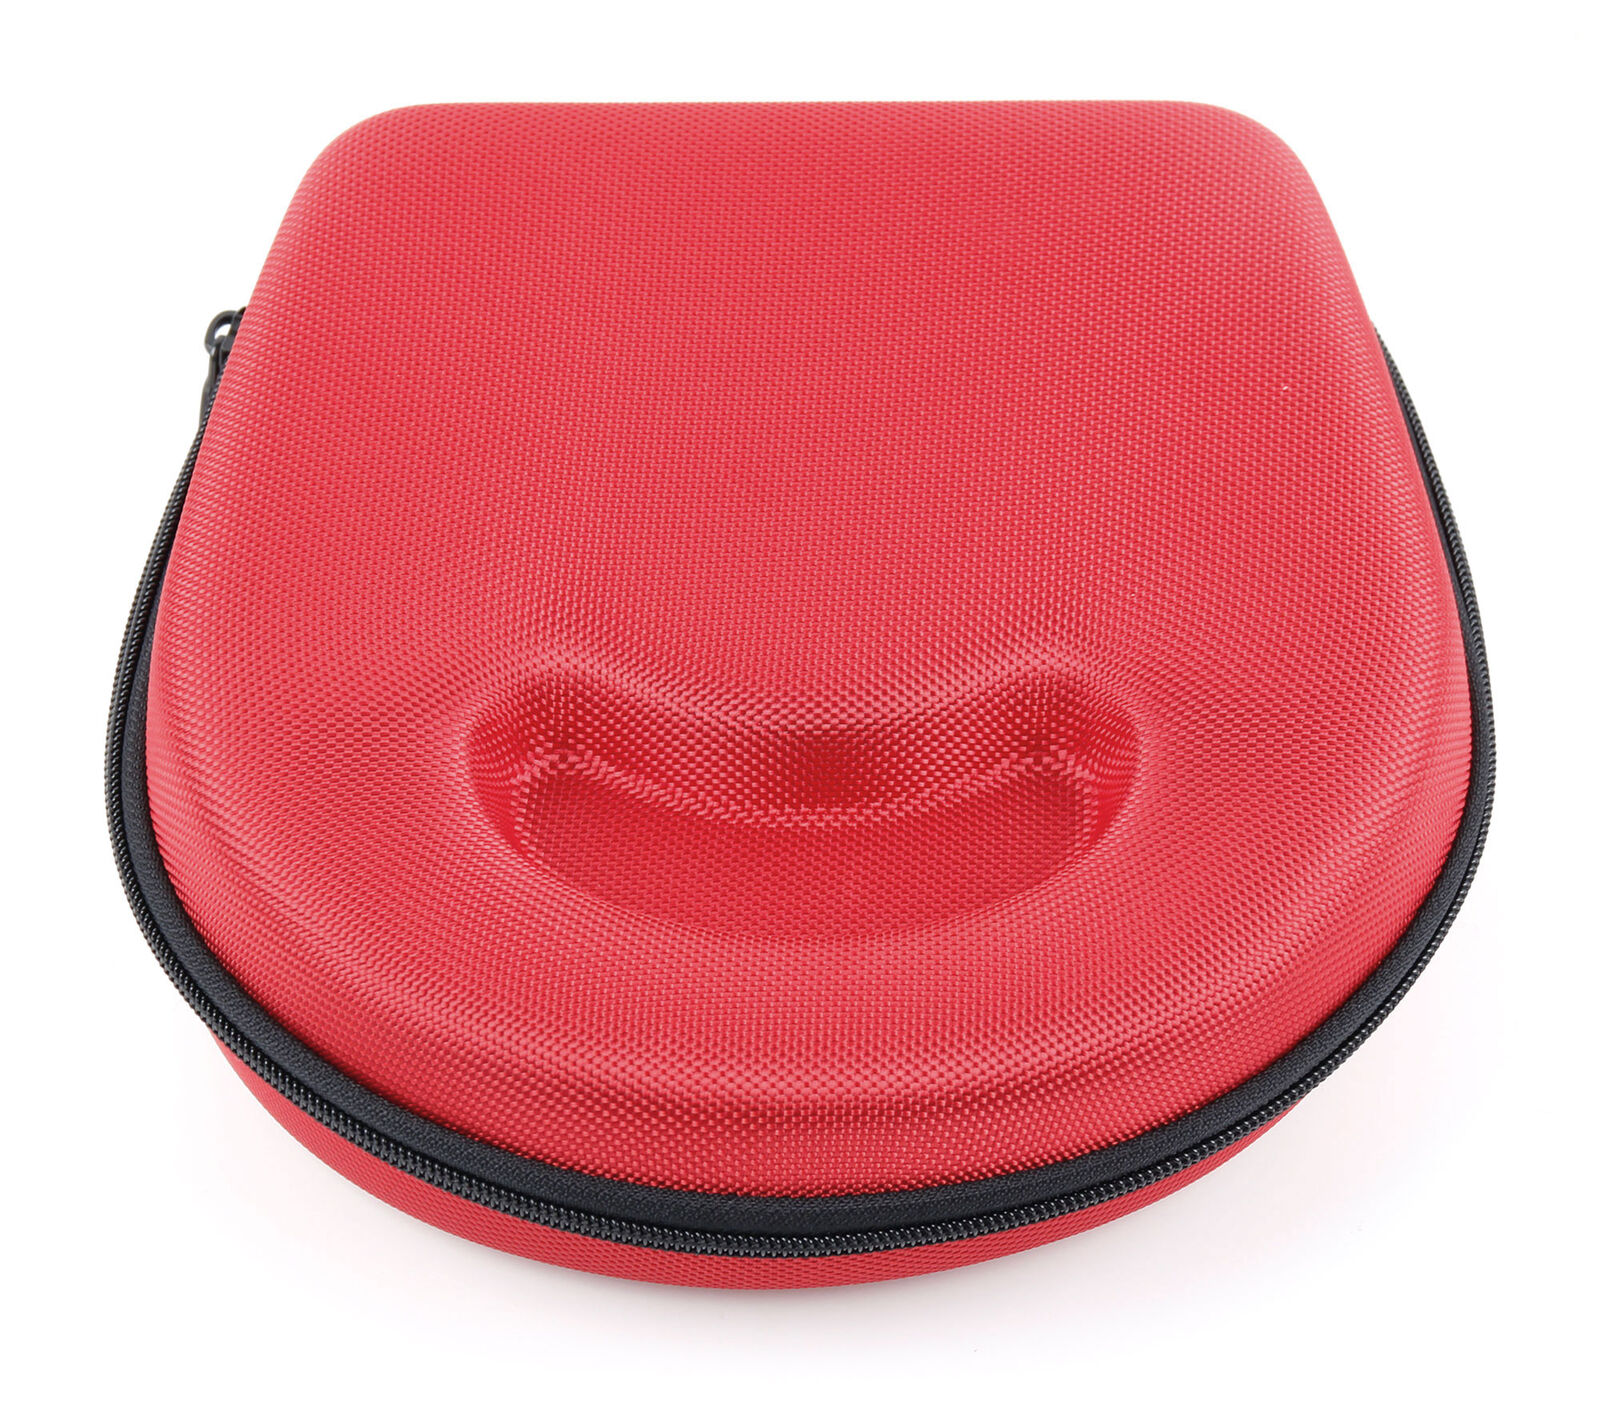 red hard headphone case for the jbl t450 t450bt c45bt headphones ebay. Black Bedroom Furniture Sets. Home Design Ideas